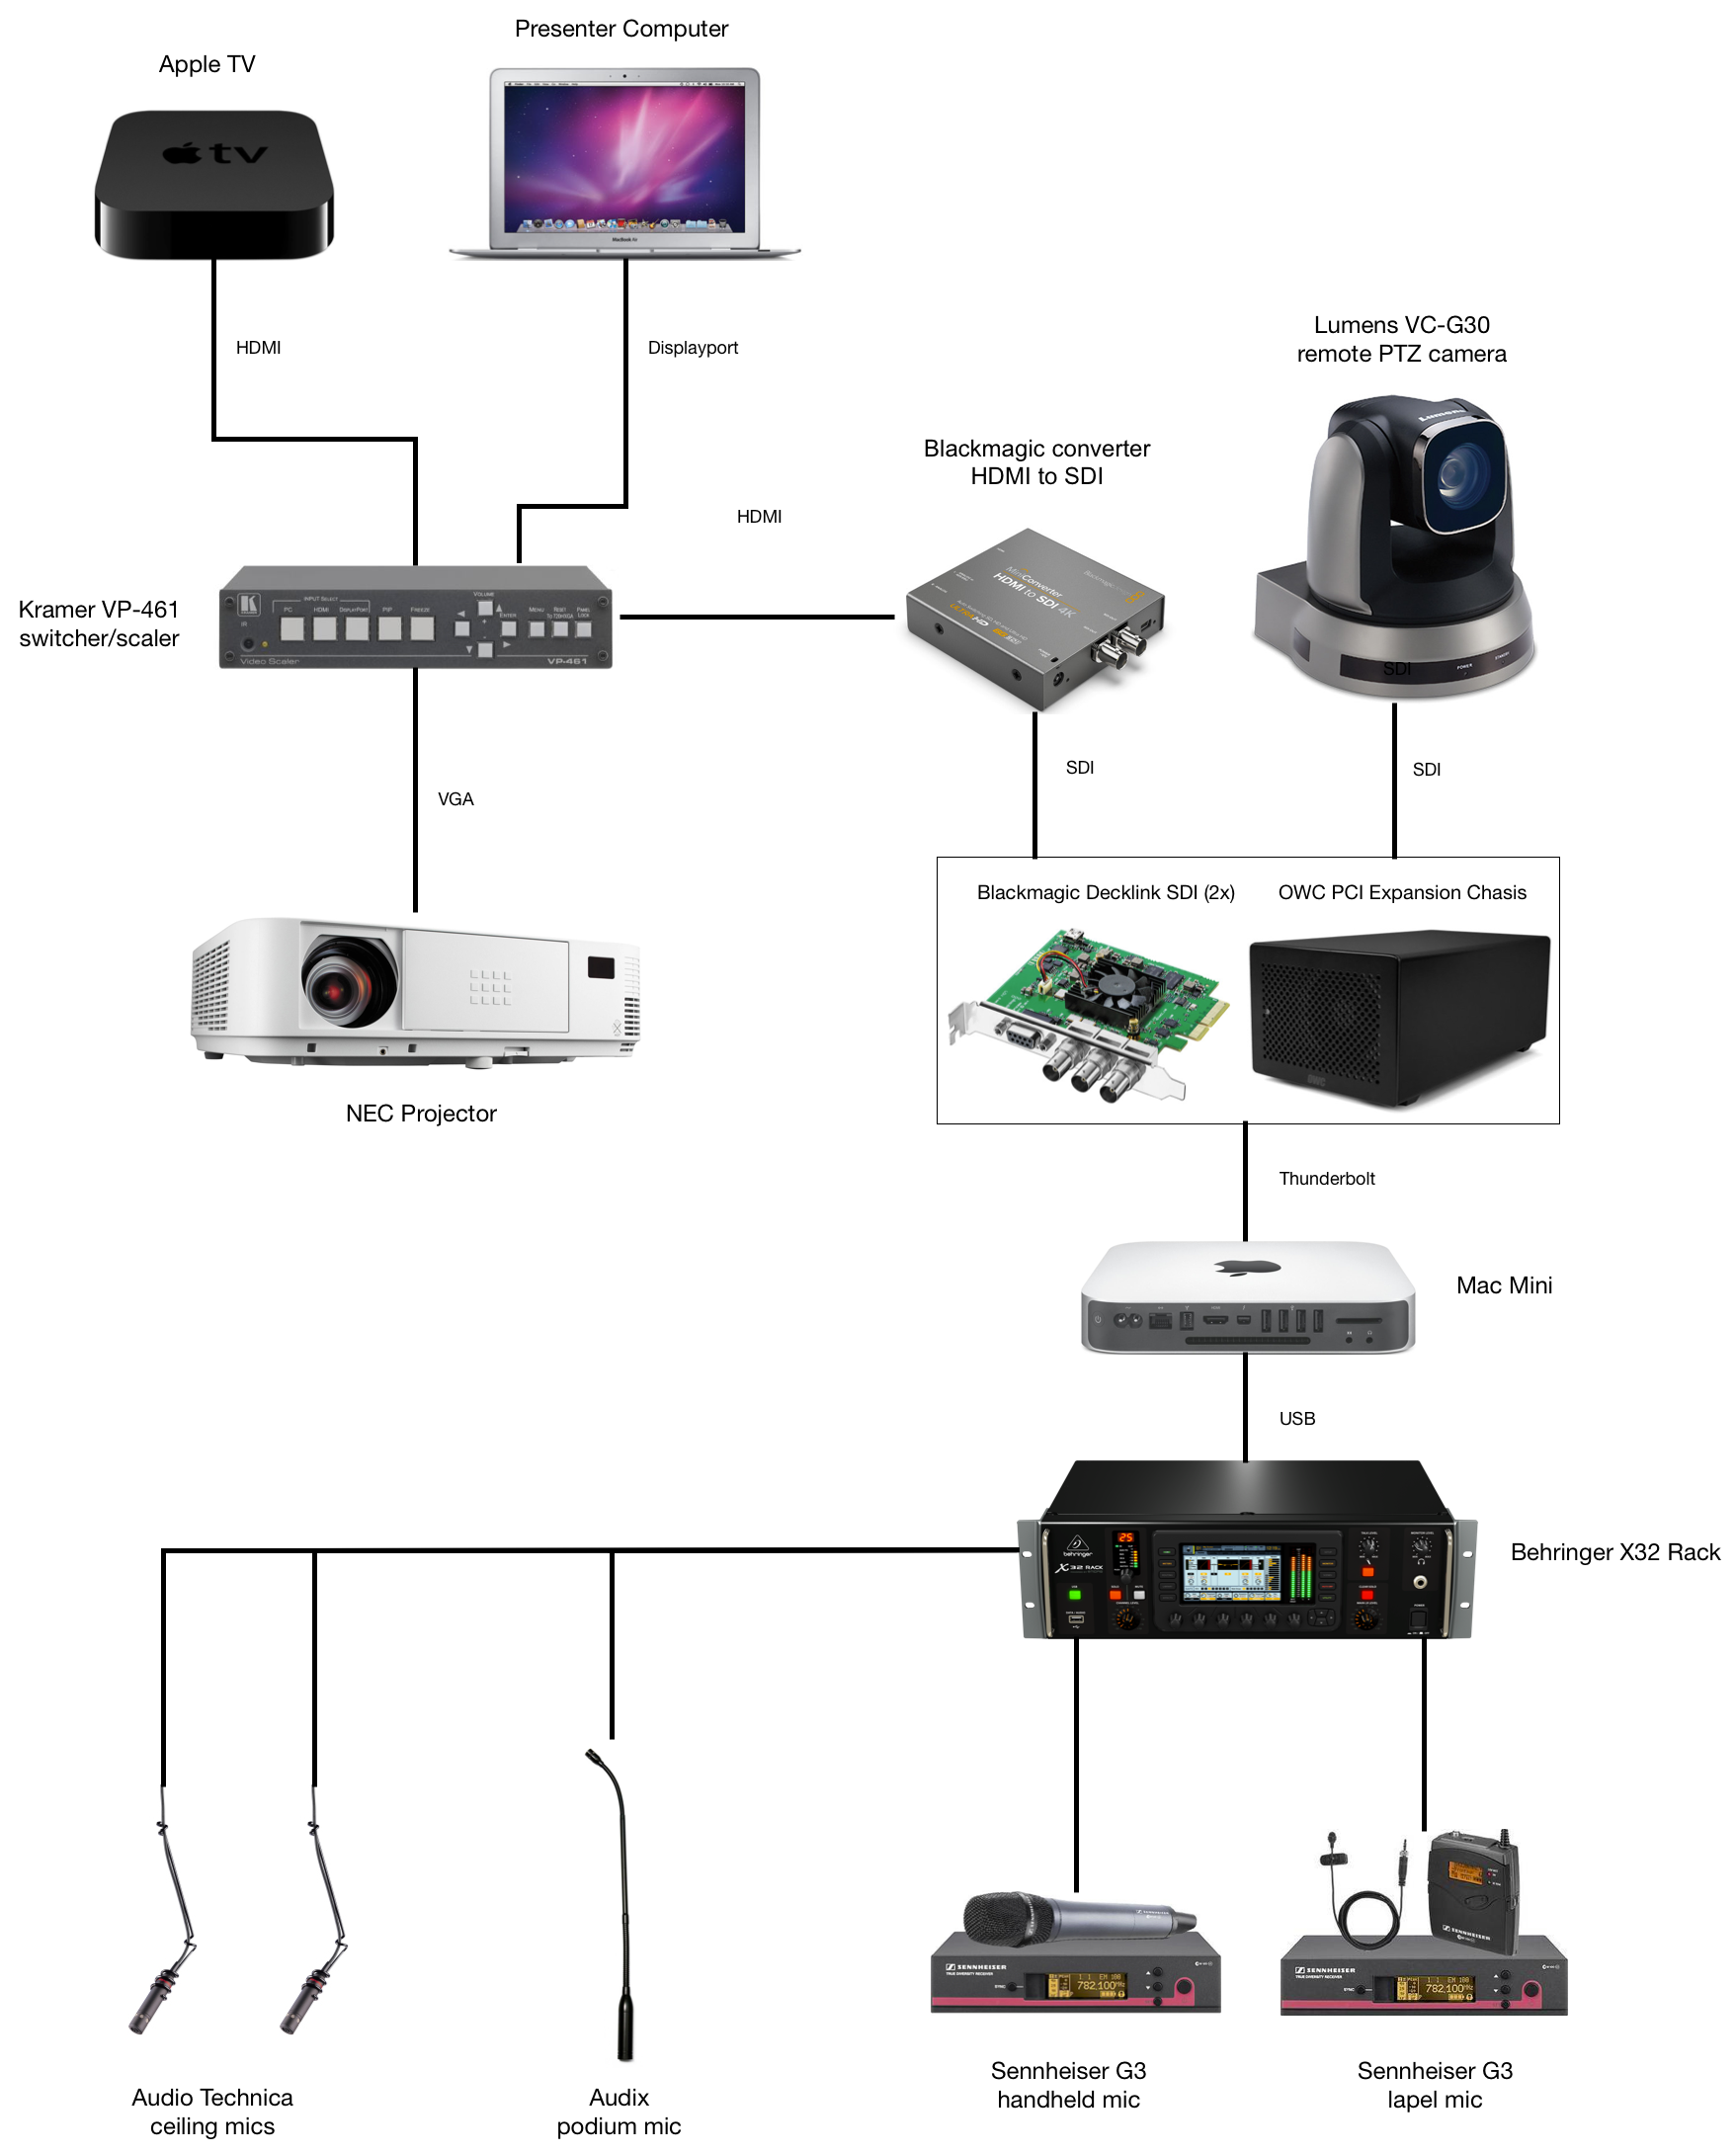 Apple Tv Wiring Diagram Just Another Data Mac Mini Diagrams The New Gaslight Av Setup Recording Videos And Podcasts Hook Ups